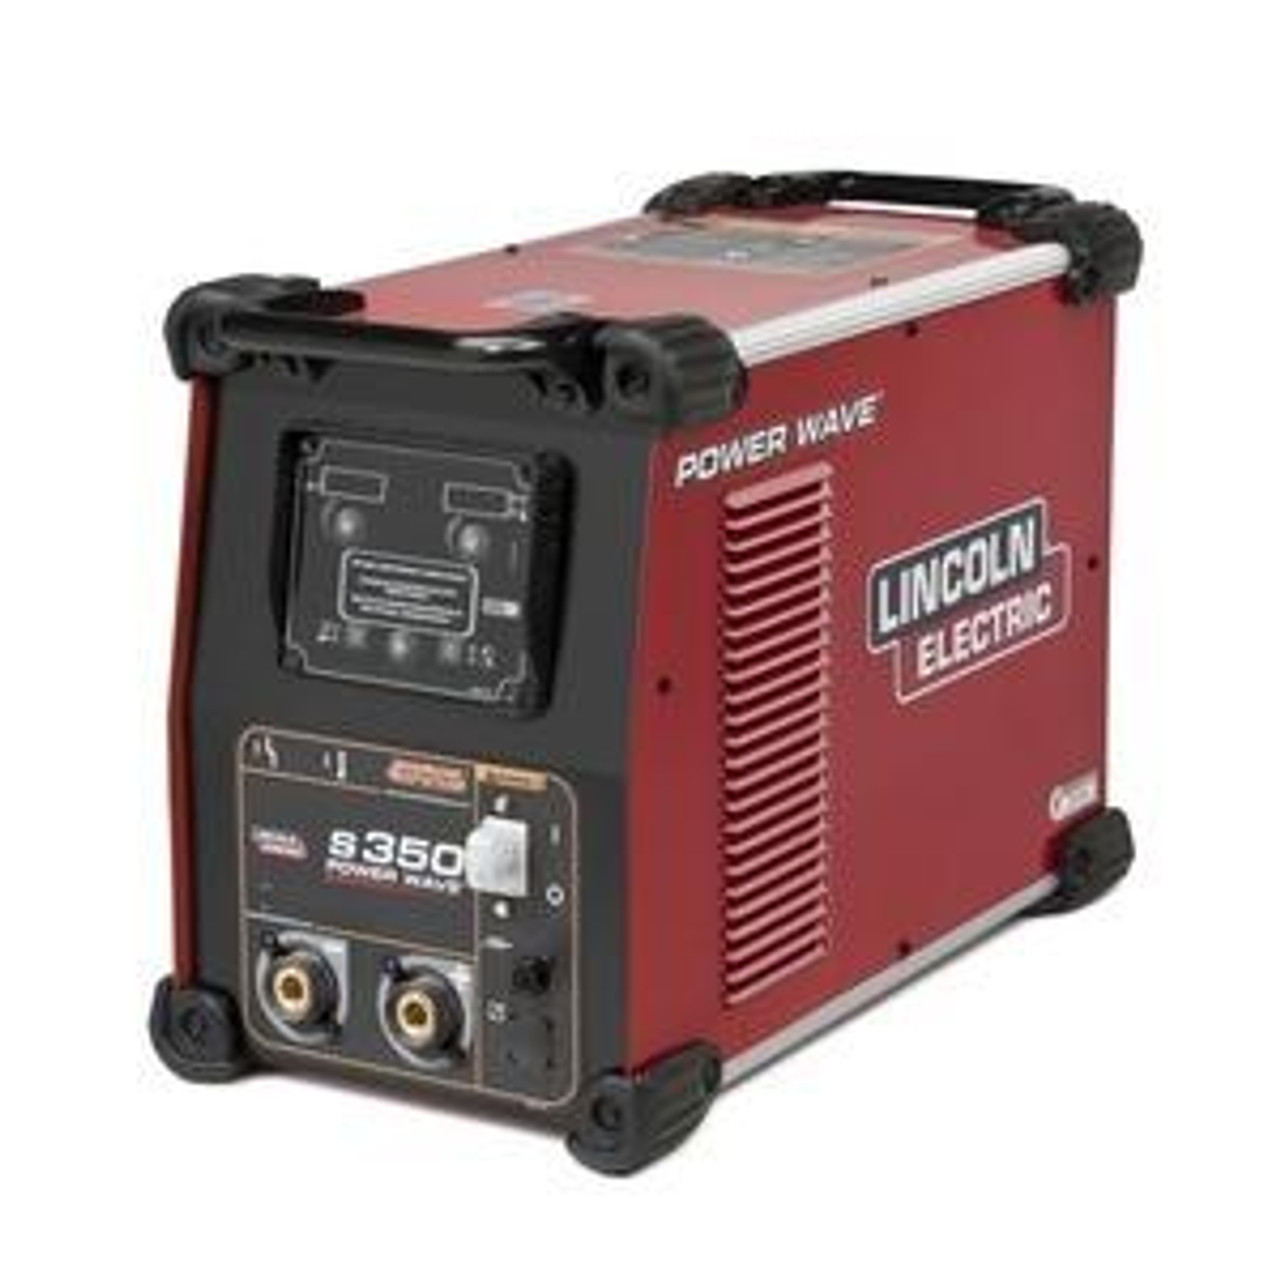 Lincoln Electric Lincoln Electric Power Wave S350 Advanced Process Welders